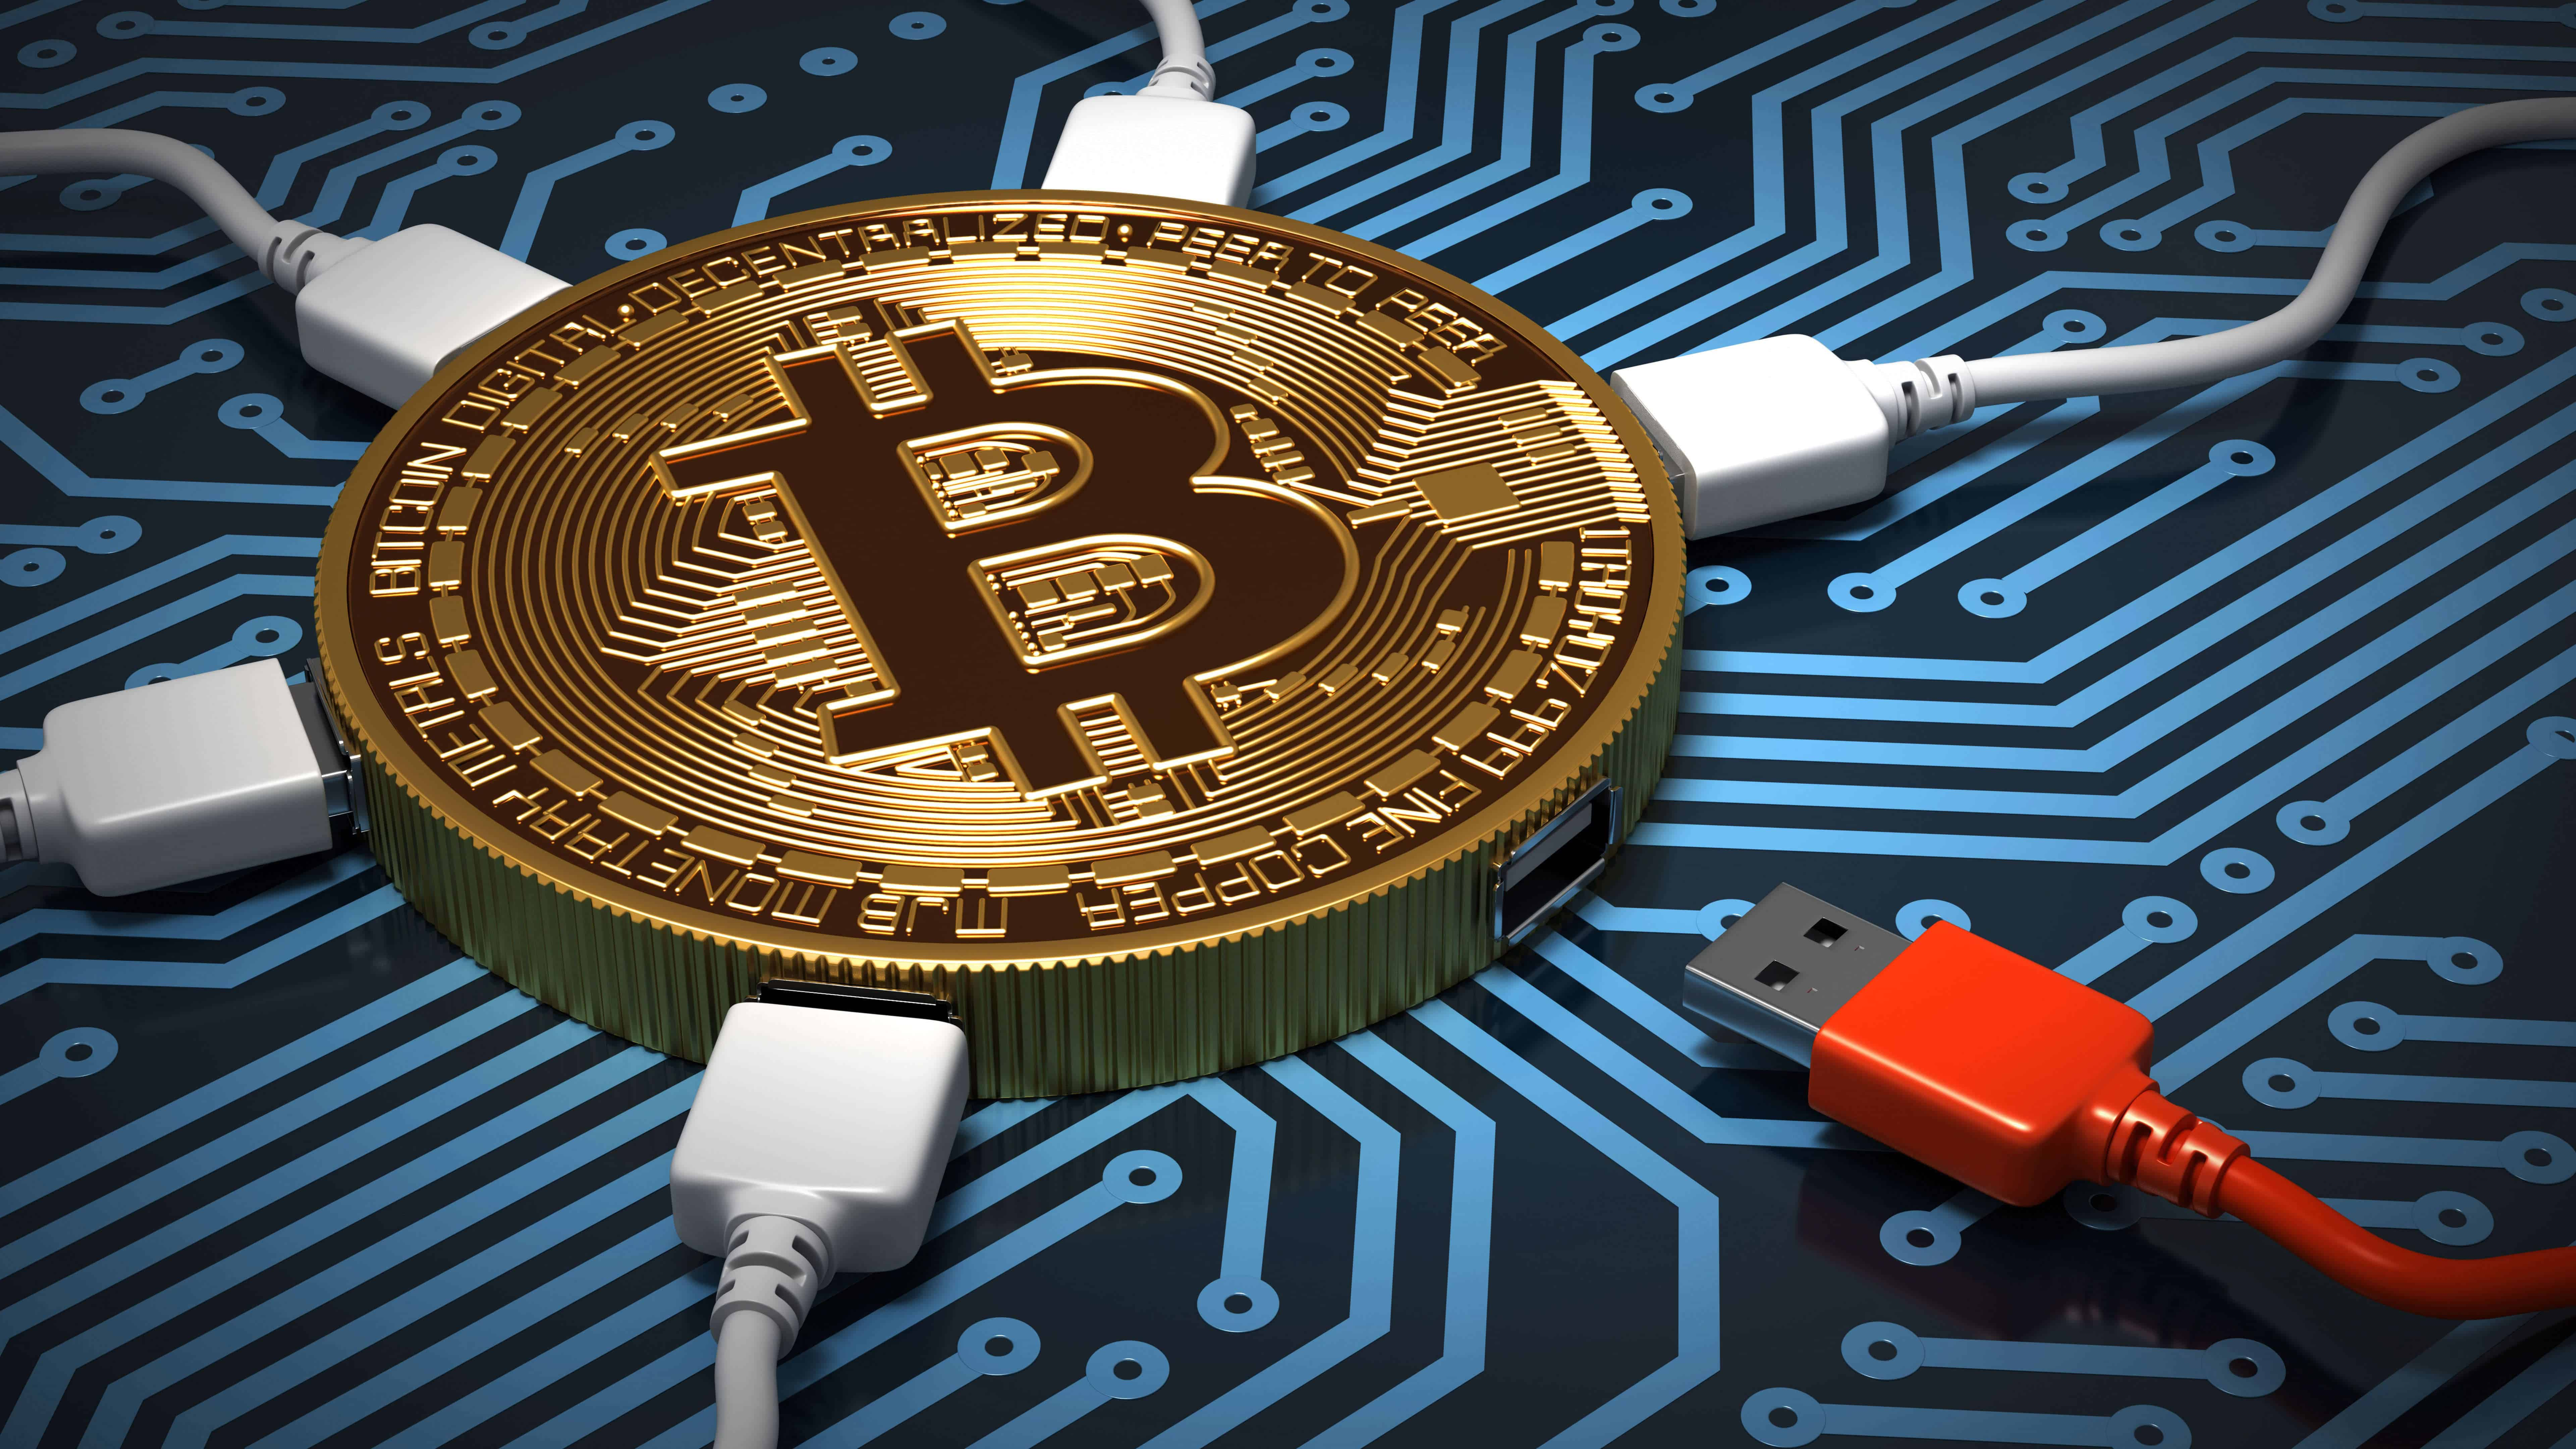 4k Wallpapers For Pc Cars Bitcoin Digital Currency Uhd 8k Wallpaper Pixelz